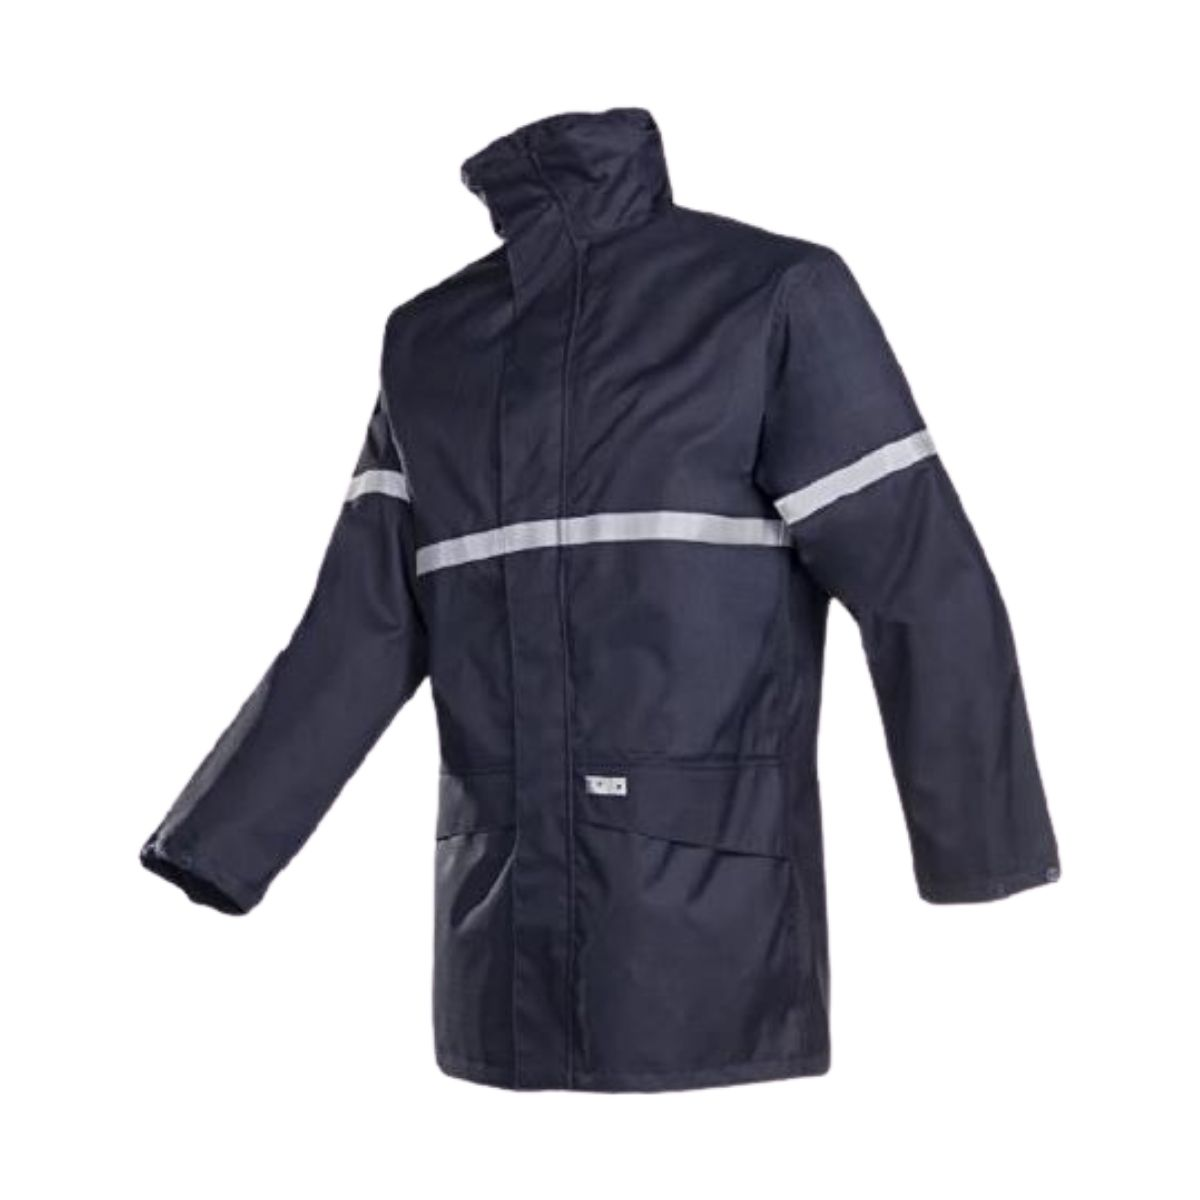 AS0300 Flame Retardant, Anti-static Parka Rain Jacket